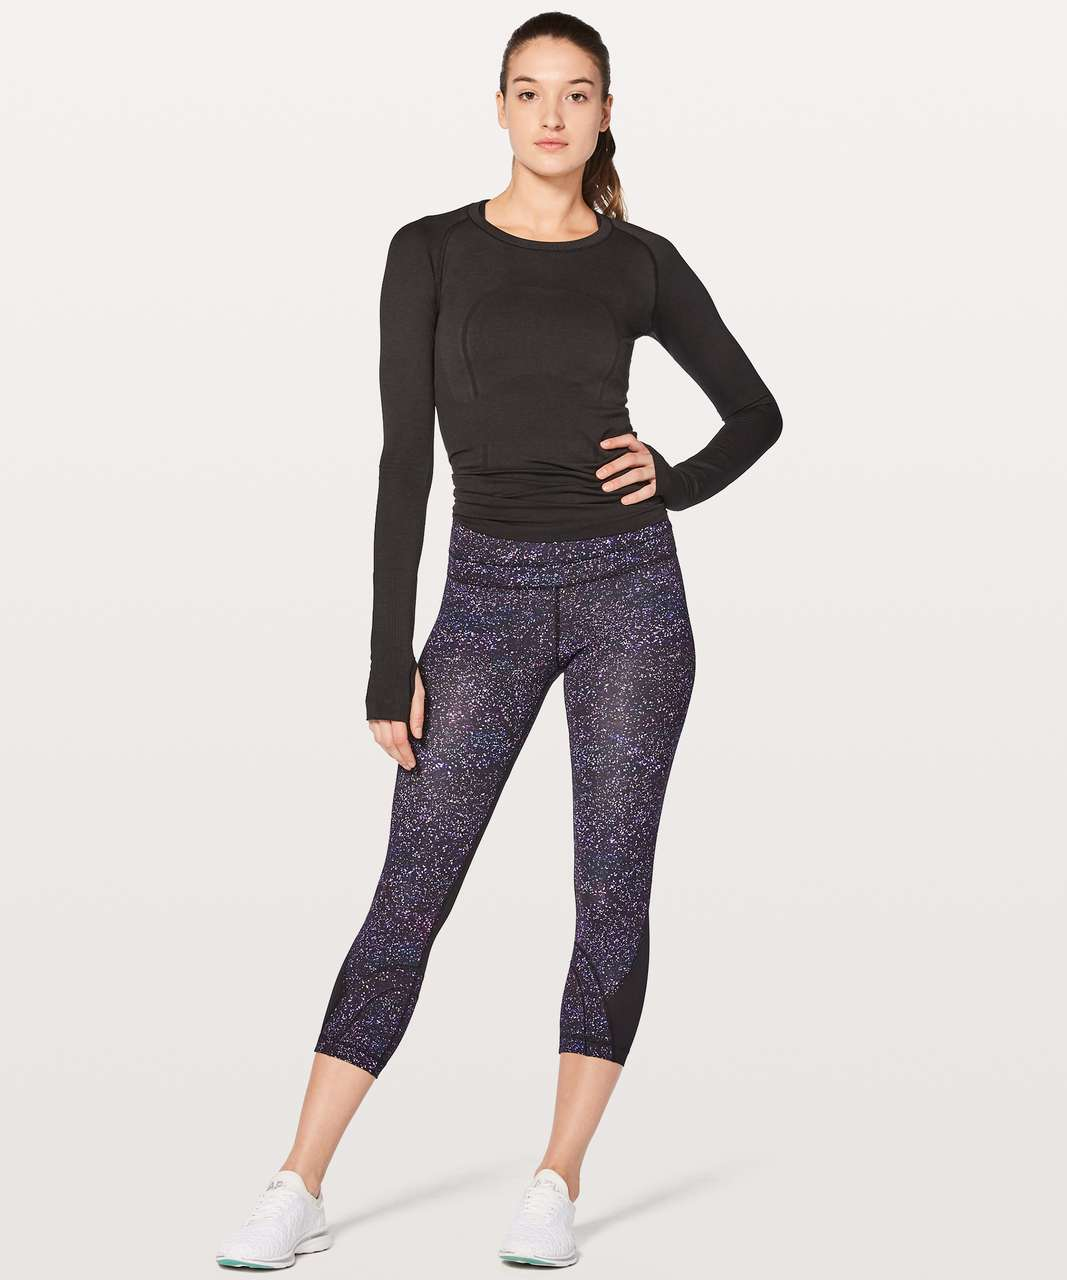 Lululemon Inspire Crop II - Crystalline Multi / Black